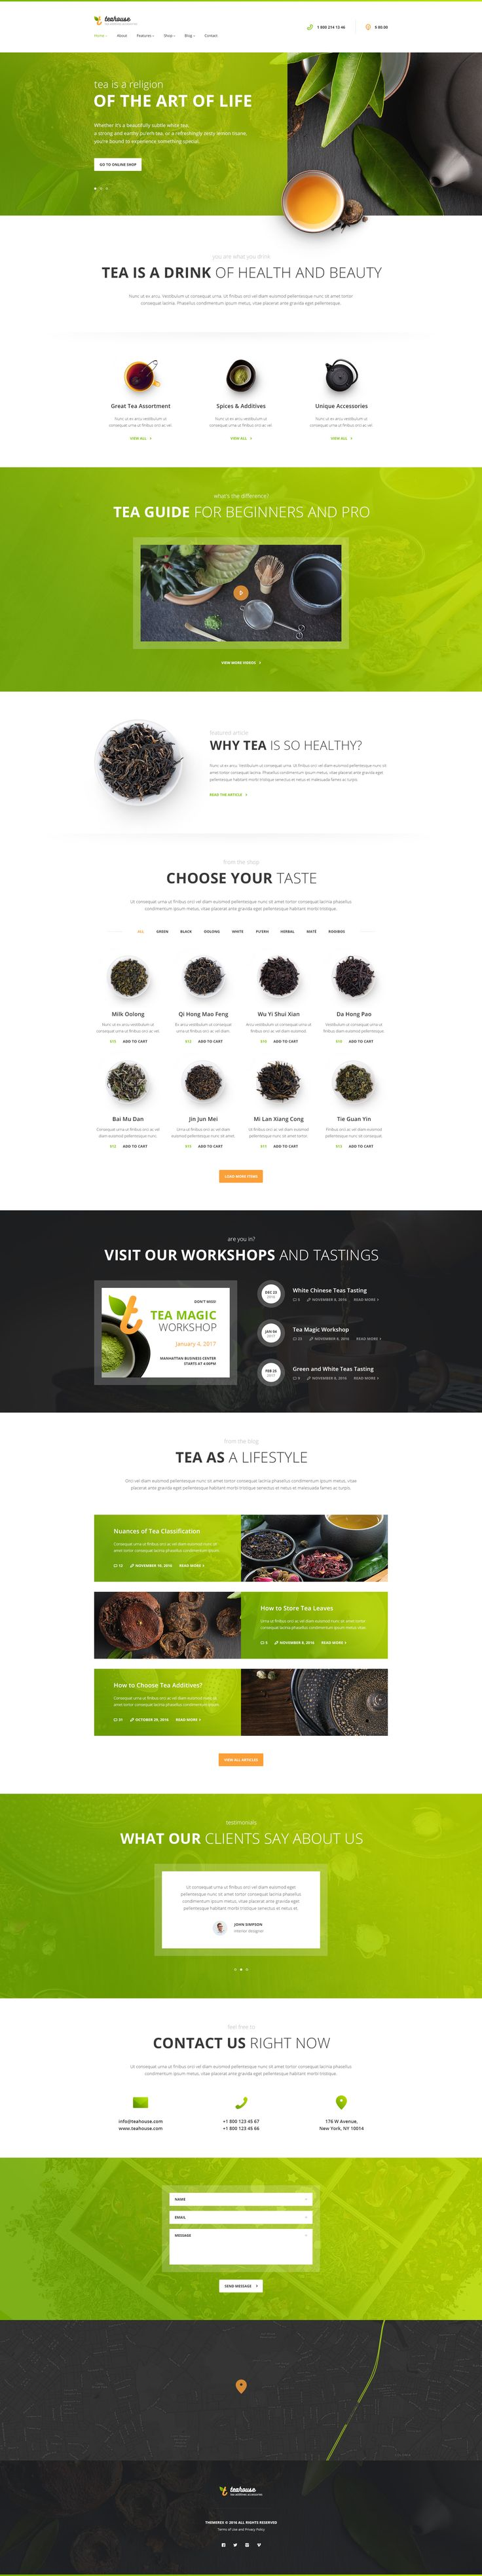 Tea House is a WordPress theme that you totally need if you want to make an impressive online presentation of your tea store, cafe, bar, restaurant, bakery, etc.